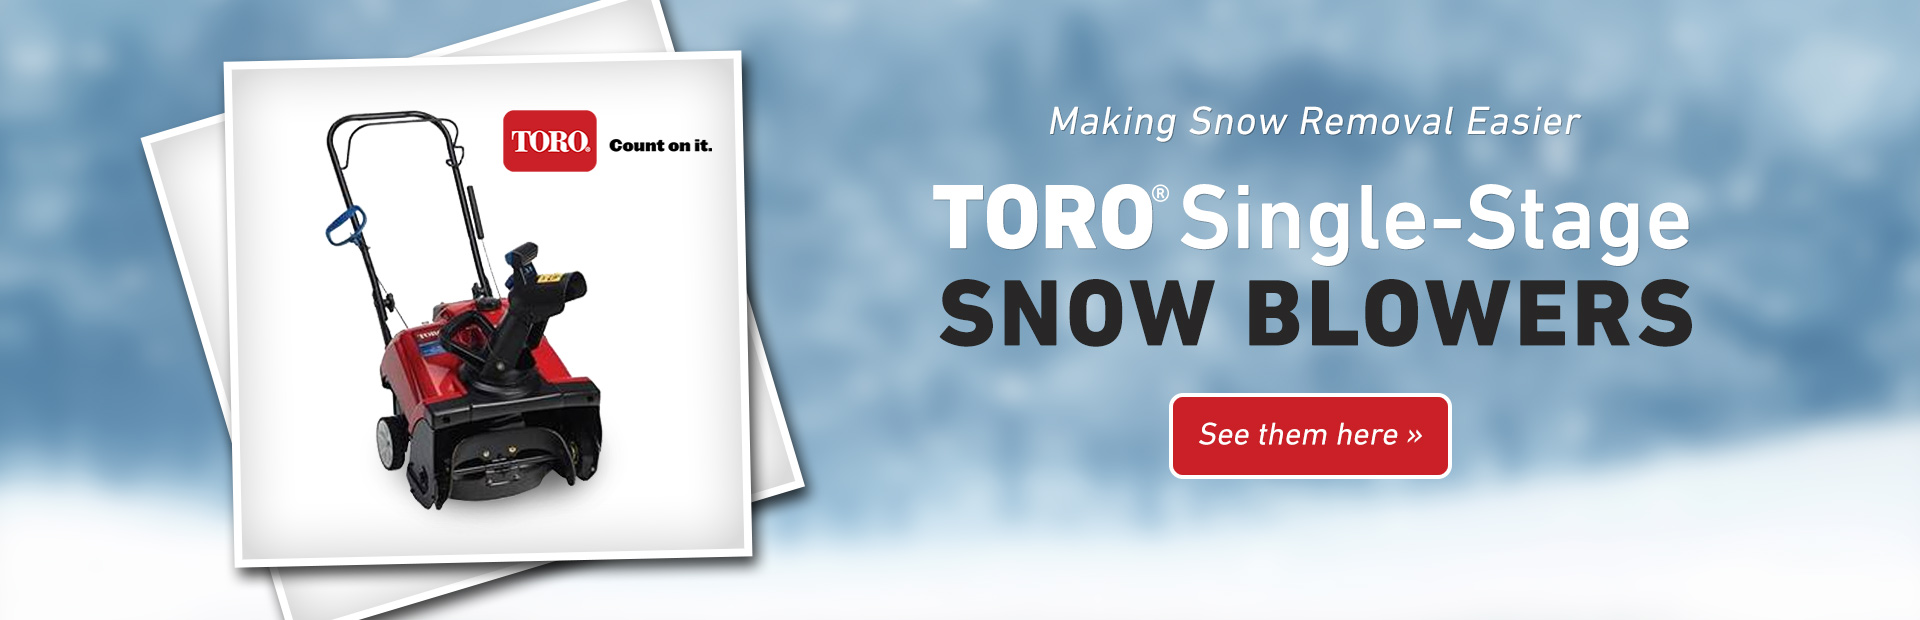 Toro Single-Stage Snow Blowers: Click here to view the models.